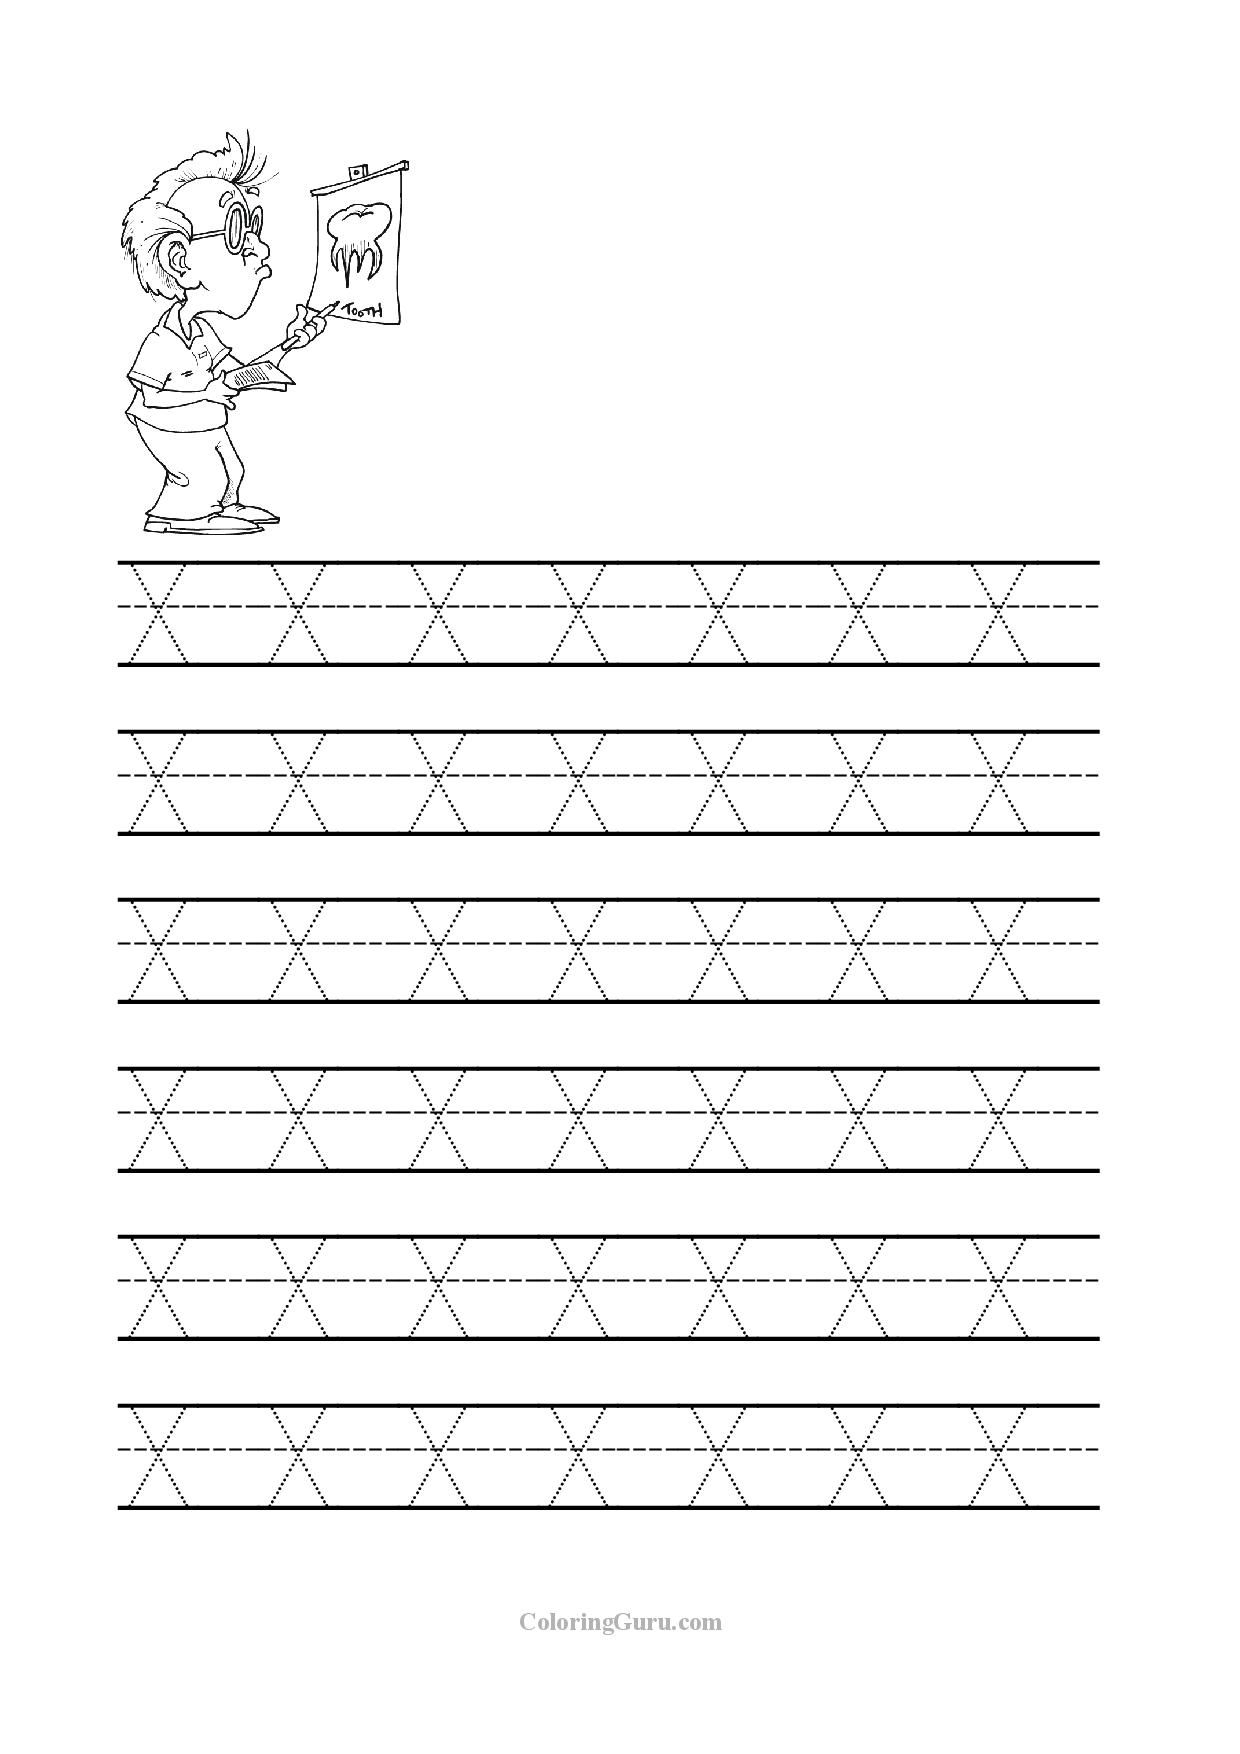 Free Printable Tracing Letter X Worksheets For Preschool for Letter X Tracing Sheet